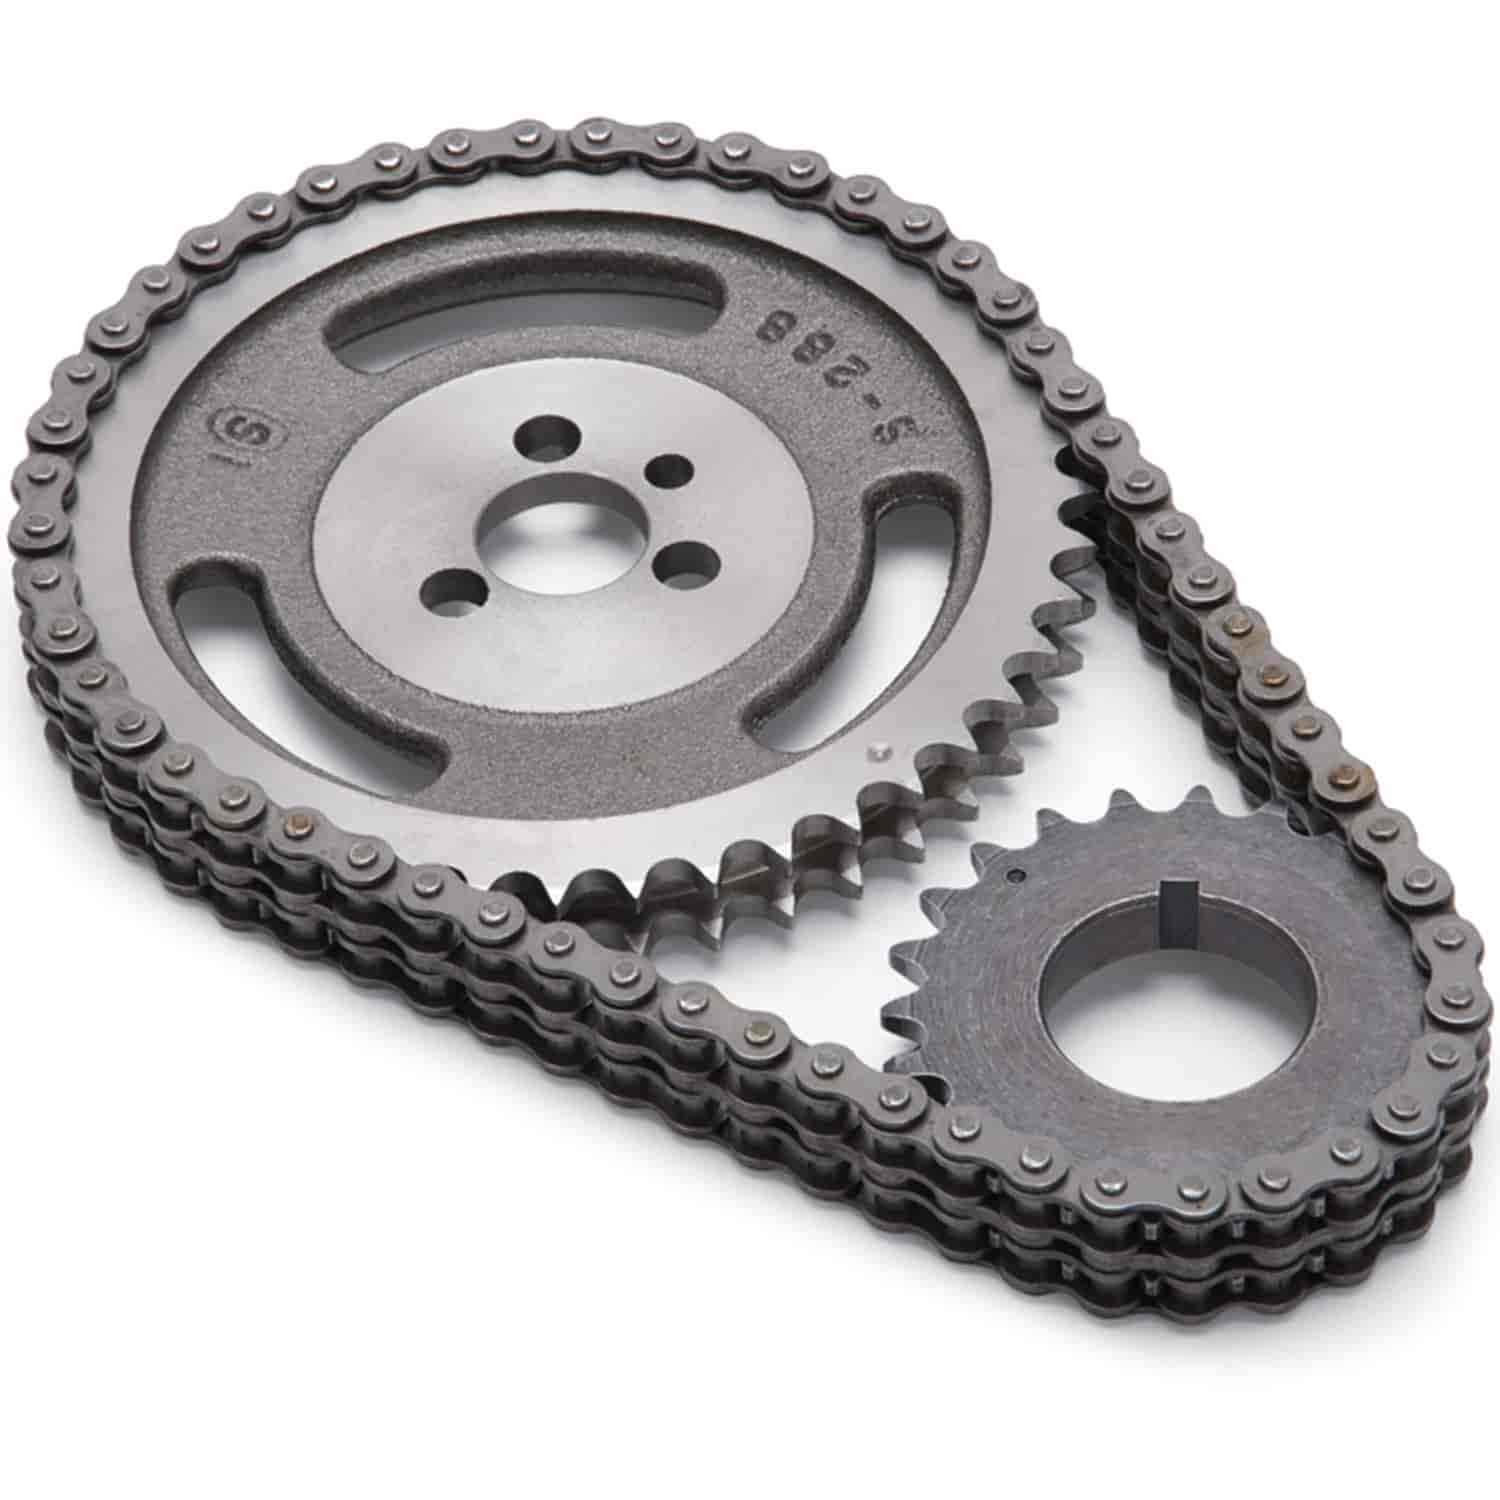 Edelbrock Stock Replacement Performer-Link Timing Chain Set for 1955-95  Small Block Chevy and Chevy 4 3L V6